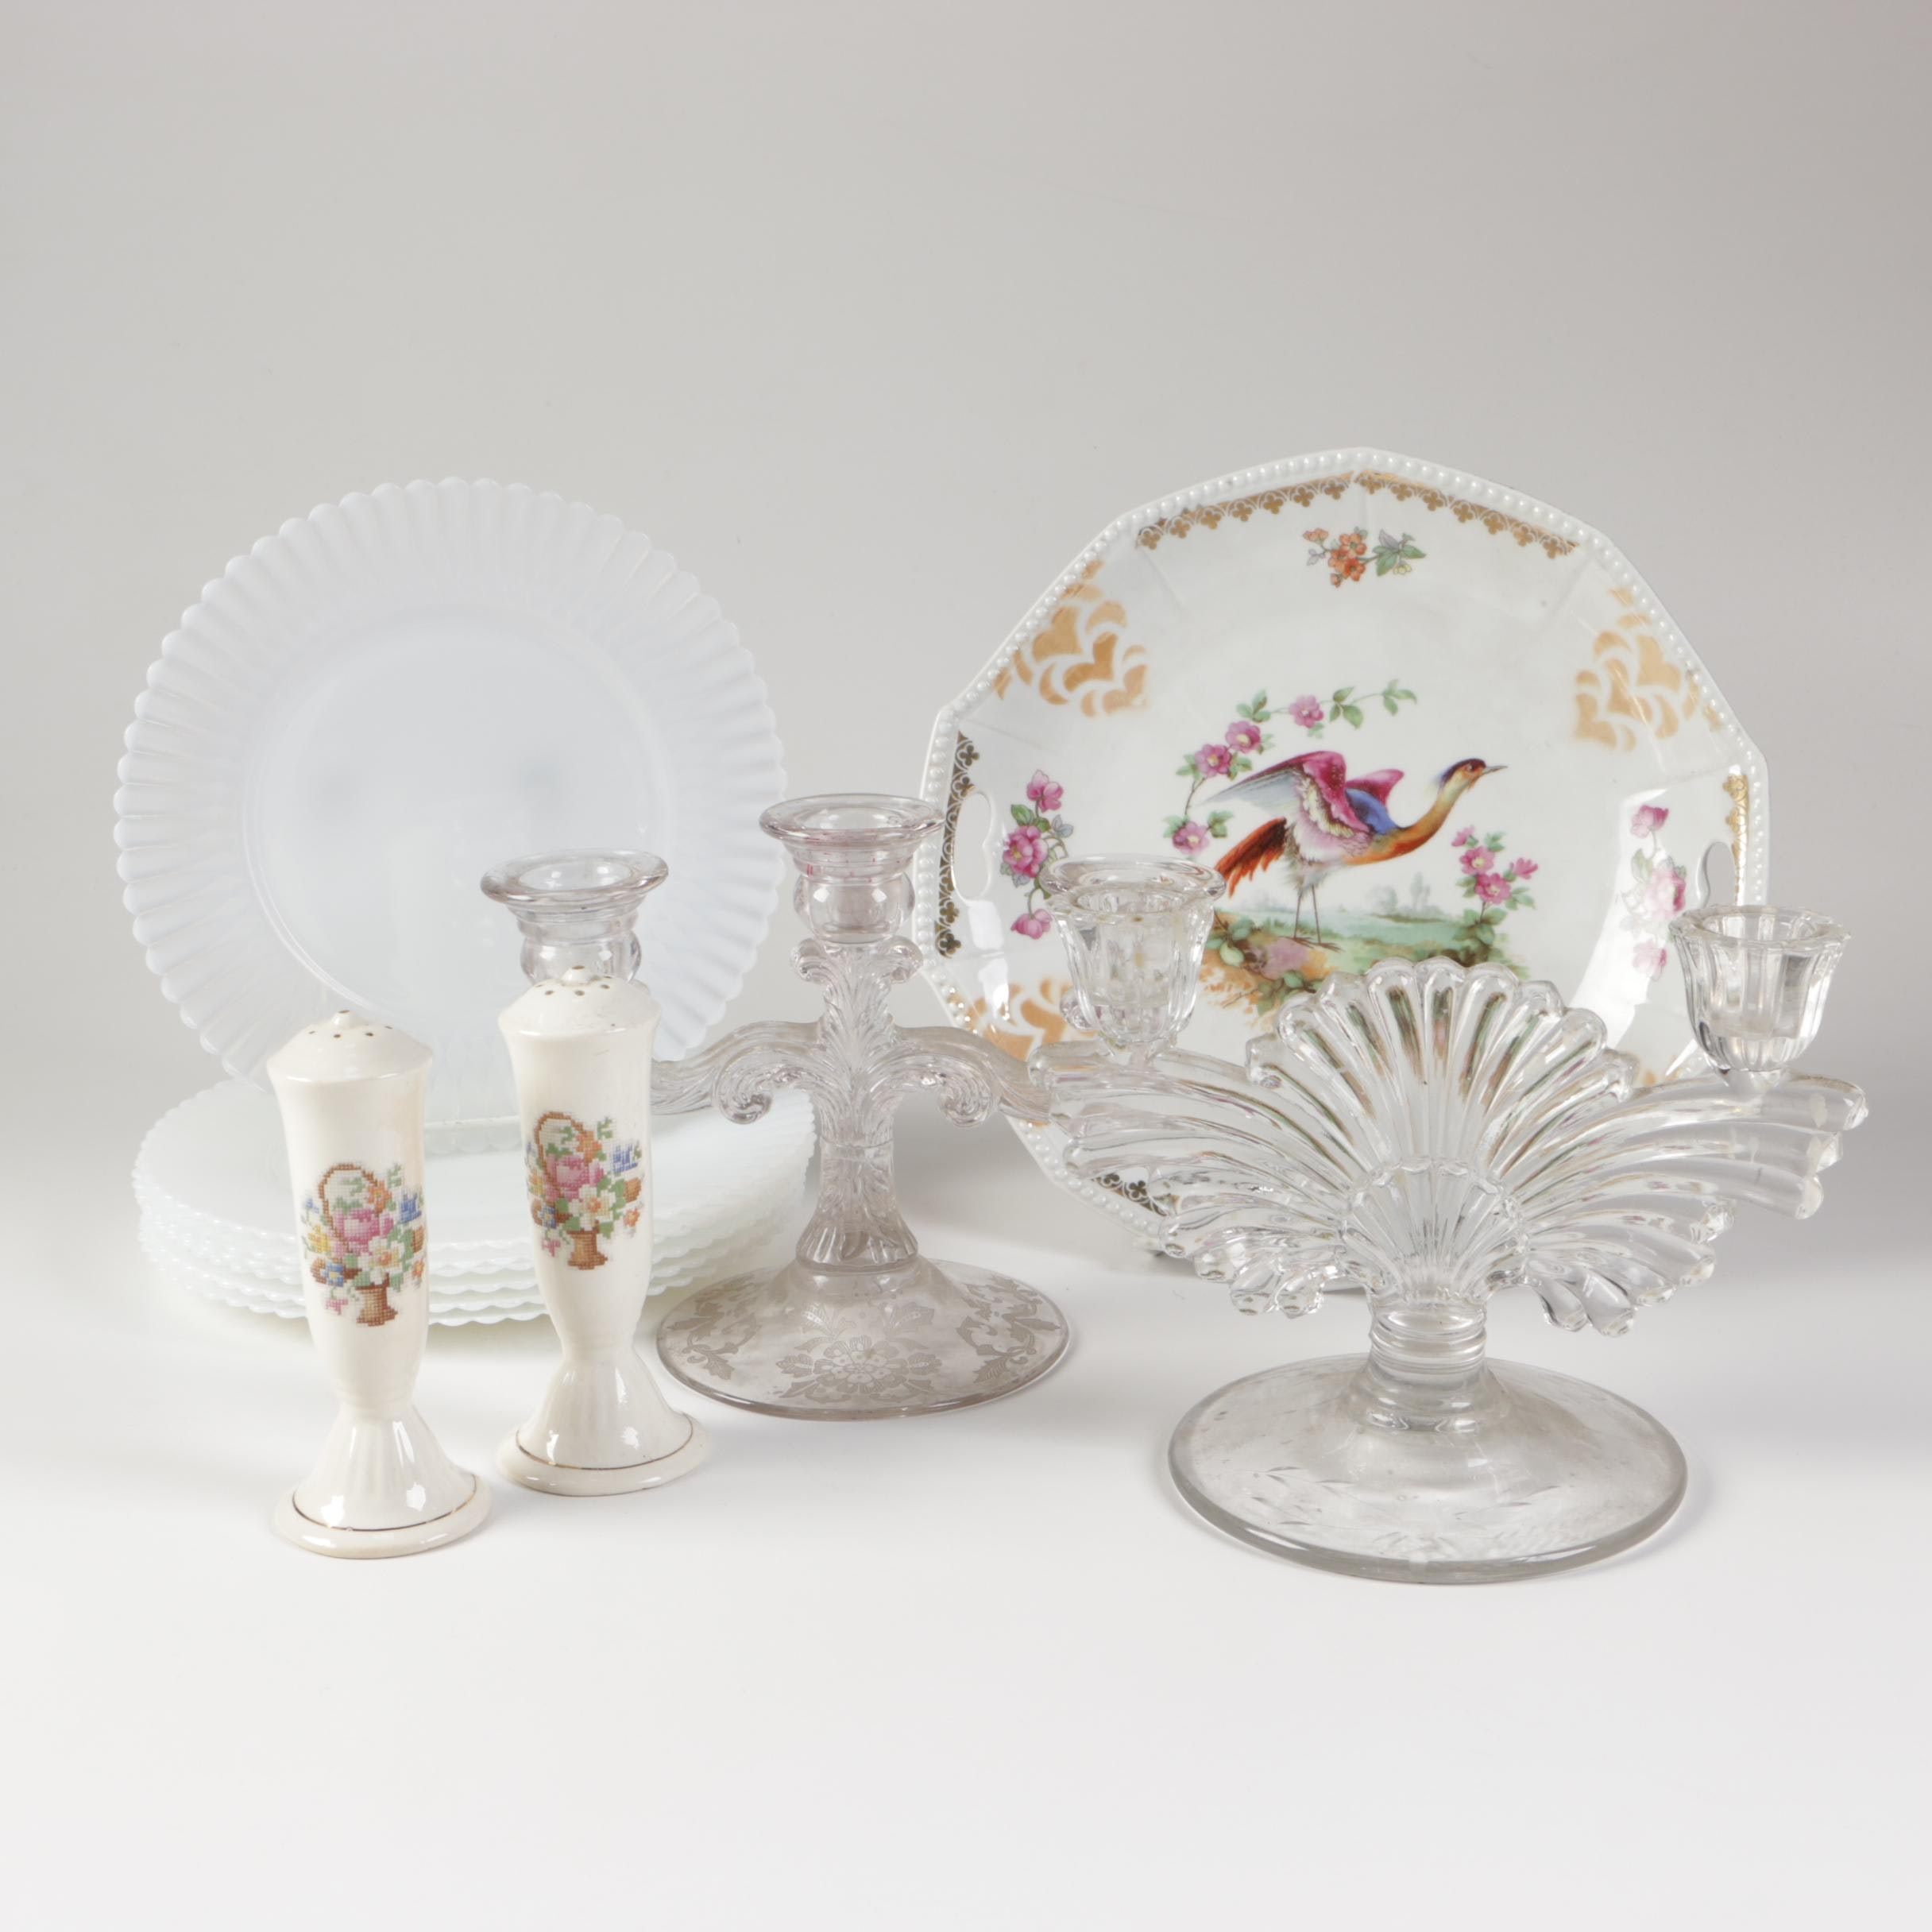 Ceramic and Glass Tableware and Decor